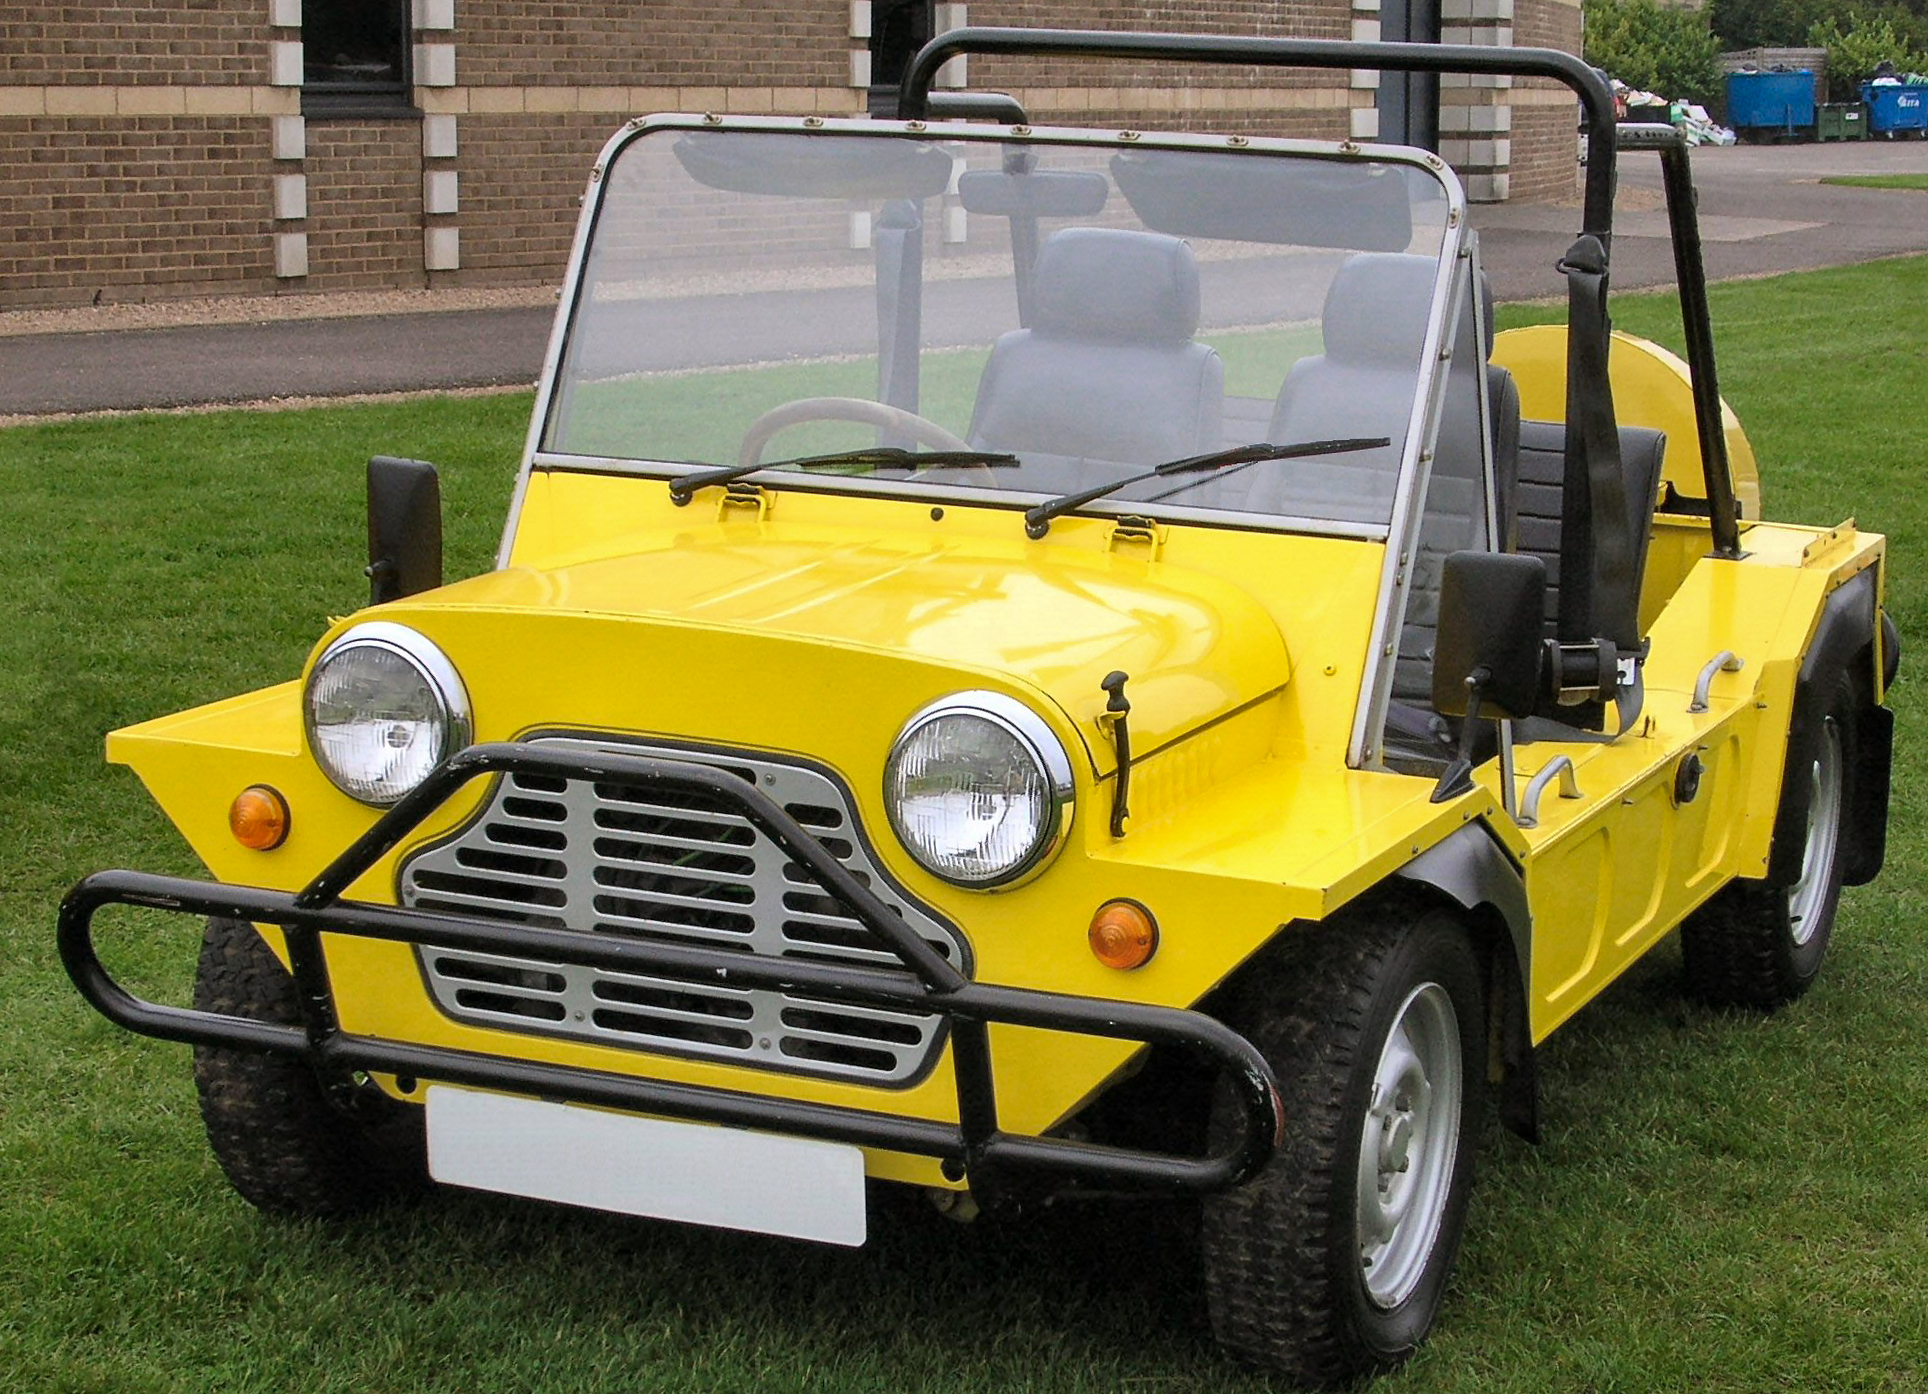 http://upload.wikimedia.org/wikipedia/commons/3/3a/Mini-Moke_1984.jpg